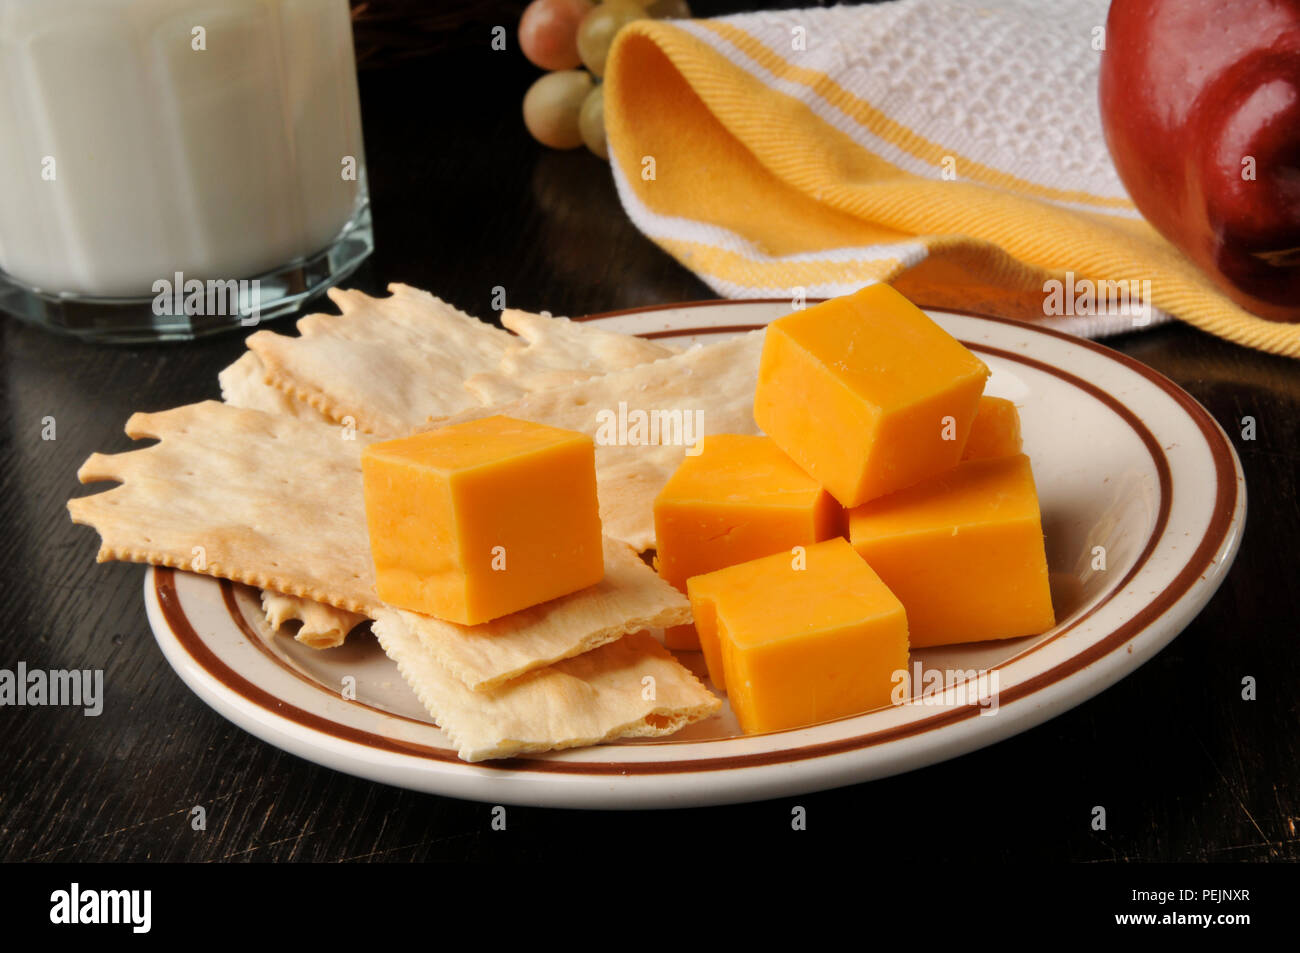 Gourmet flatbread crackers with aged cheddar cheese, an